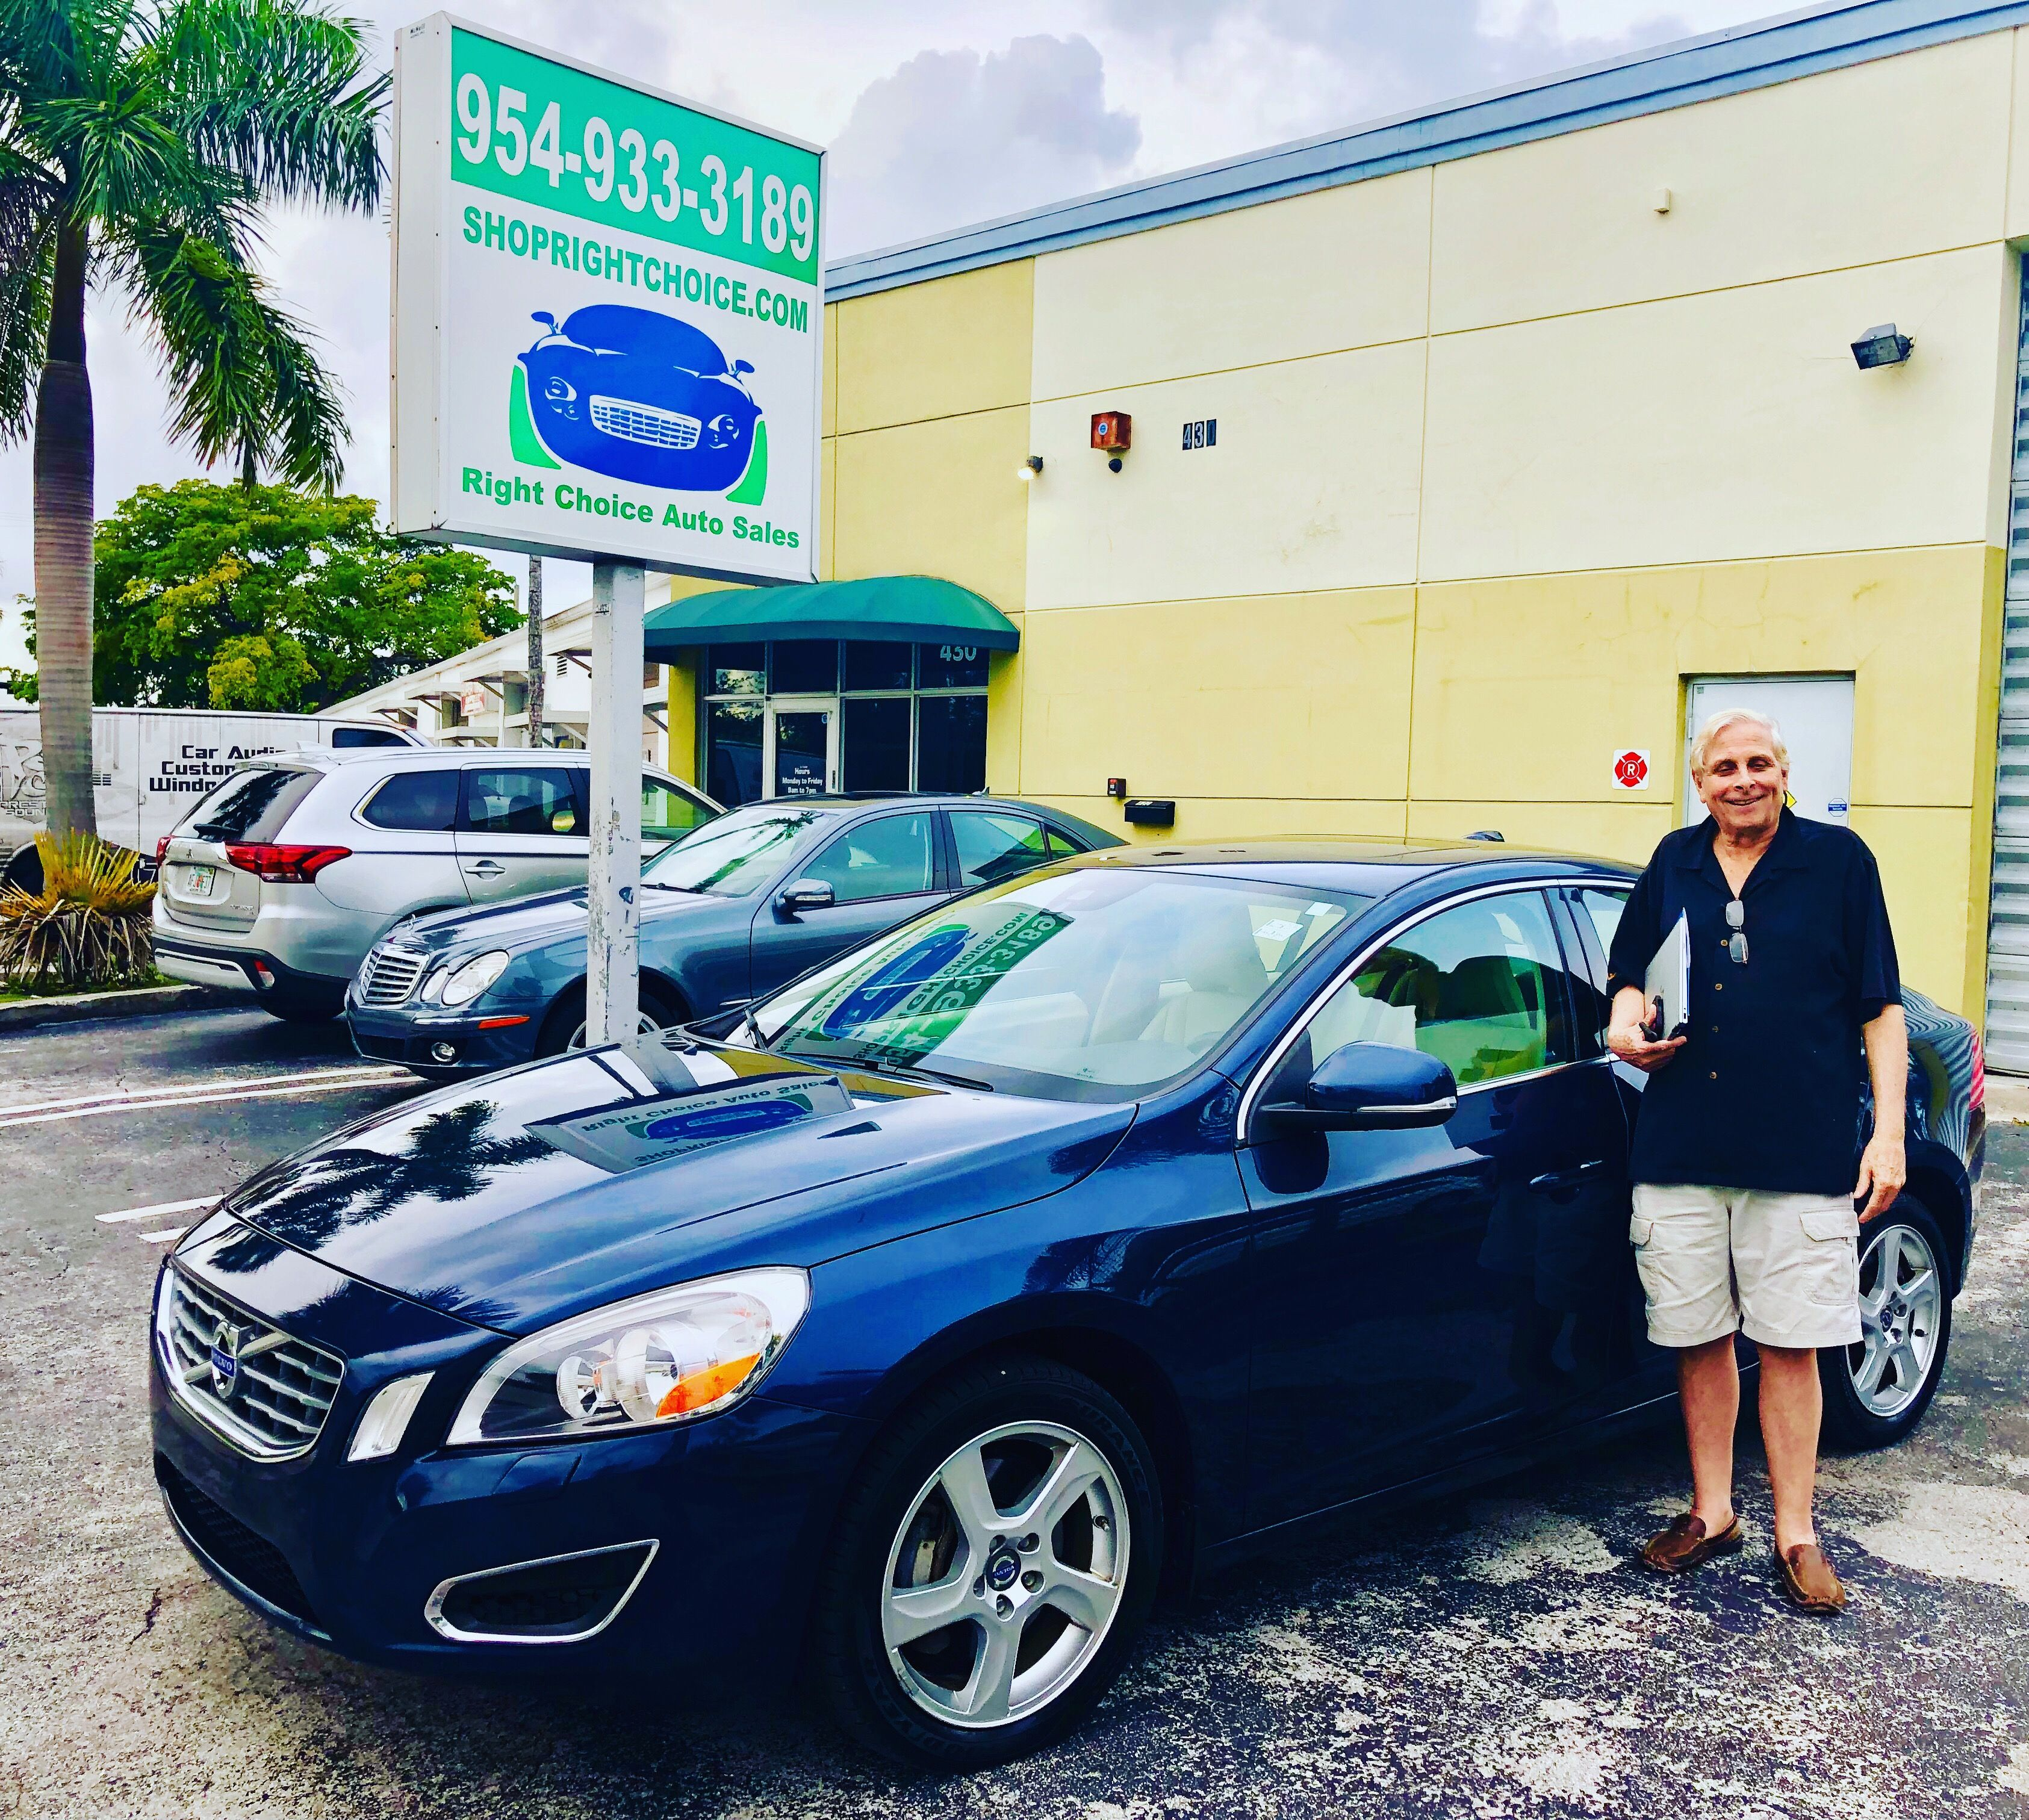 2012 Volvo S60 T5 For Sale: Tony Saved Over $1,800 On This Like-new 2012 Volvo S60 T5